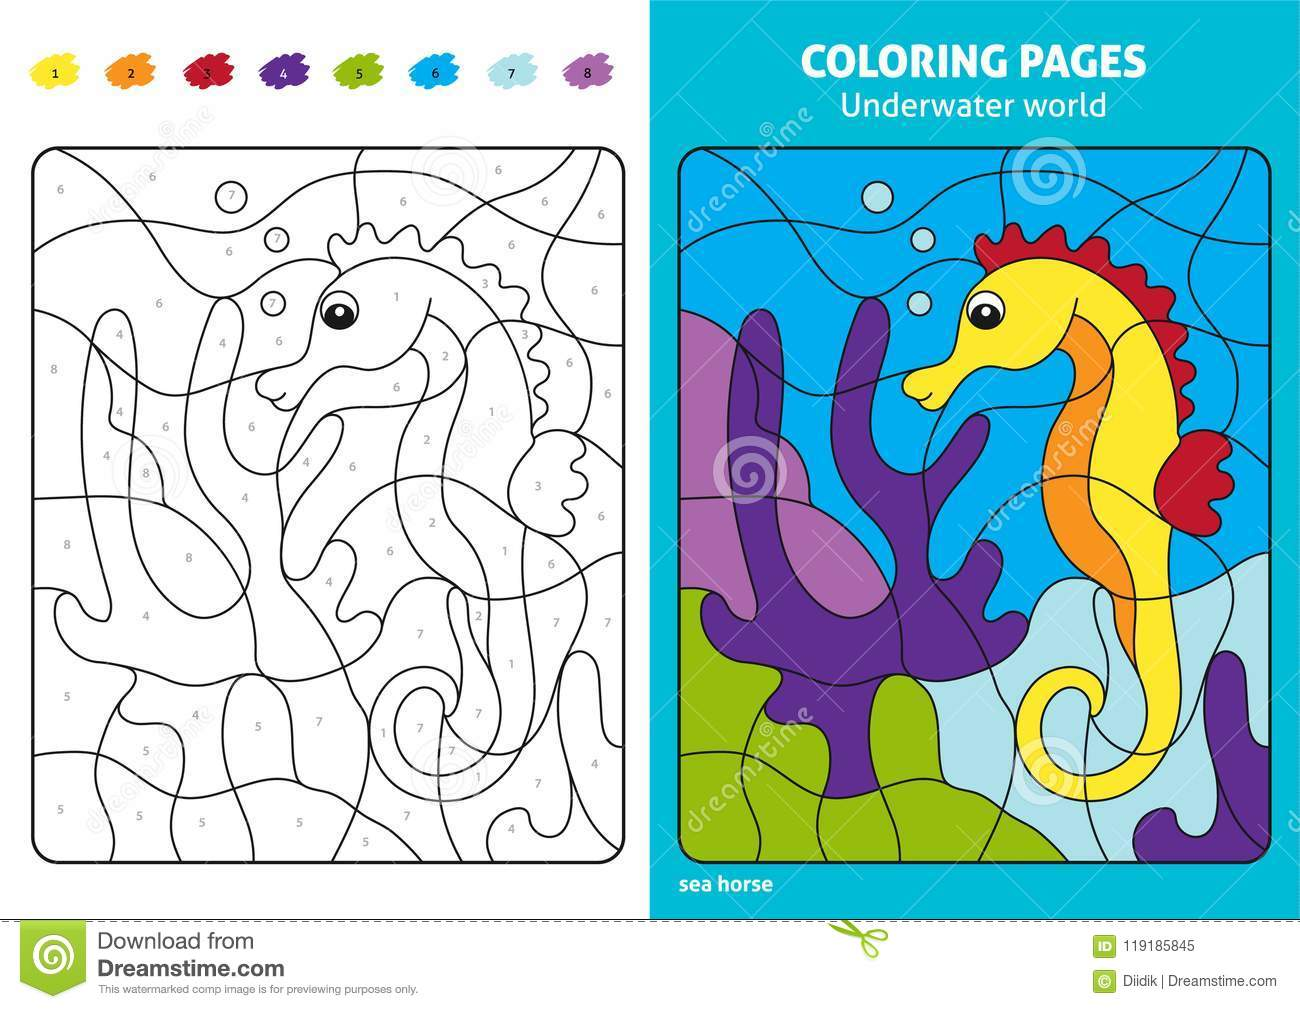 Underwater World Coloring Page For Kids, Sea Horse. Stock Vector ...